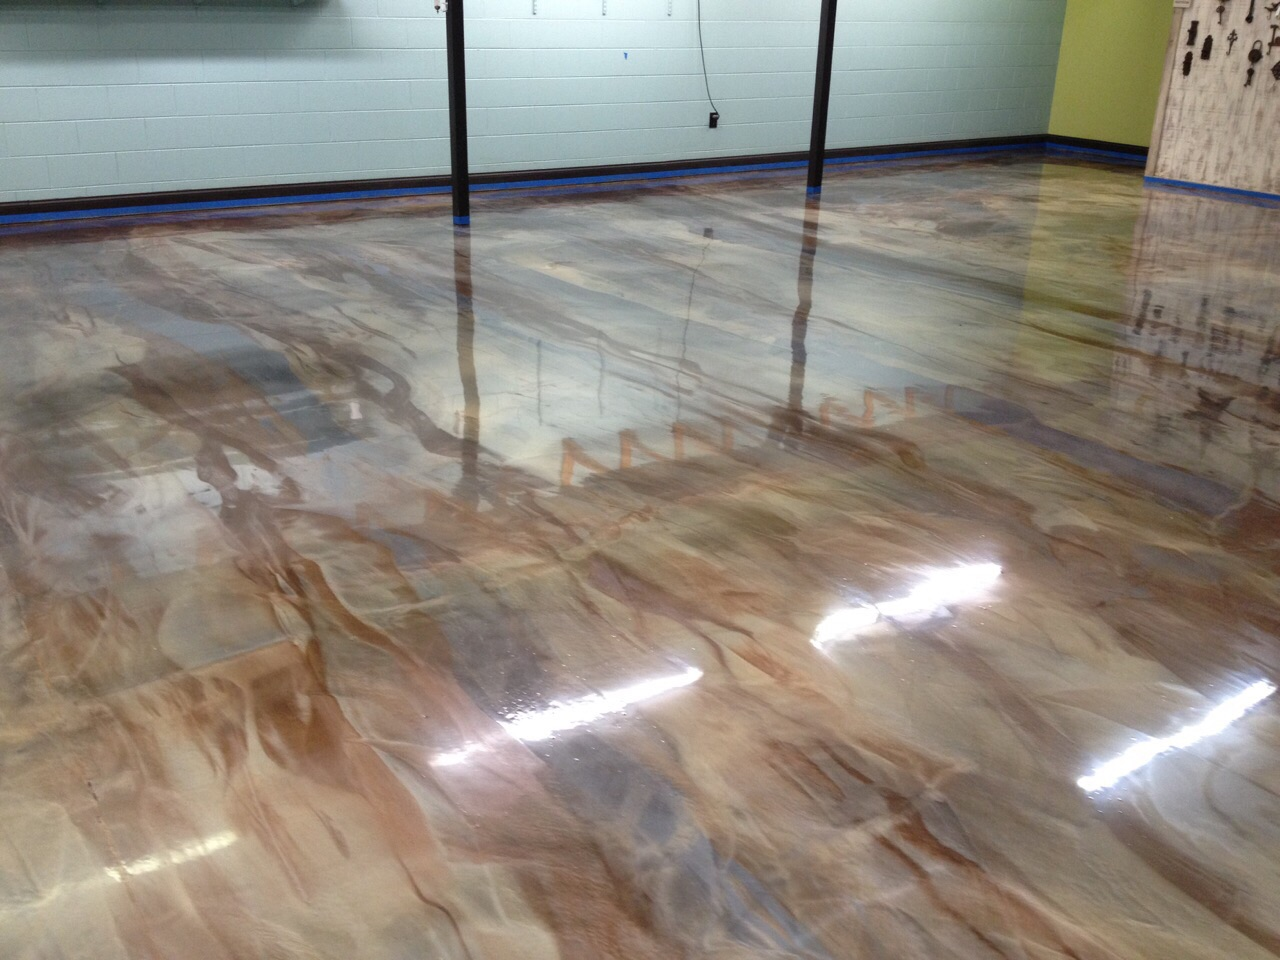 Garage Experts Epoxy Floor Commercial Epoxy Floors Made For Today S Demands